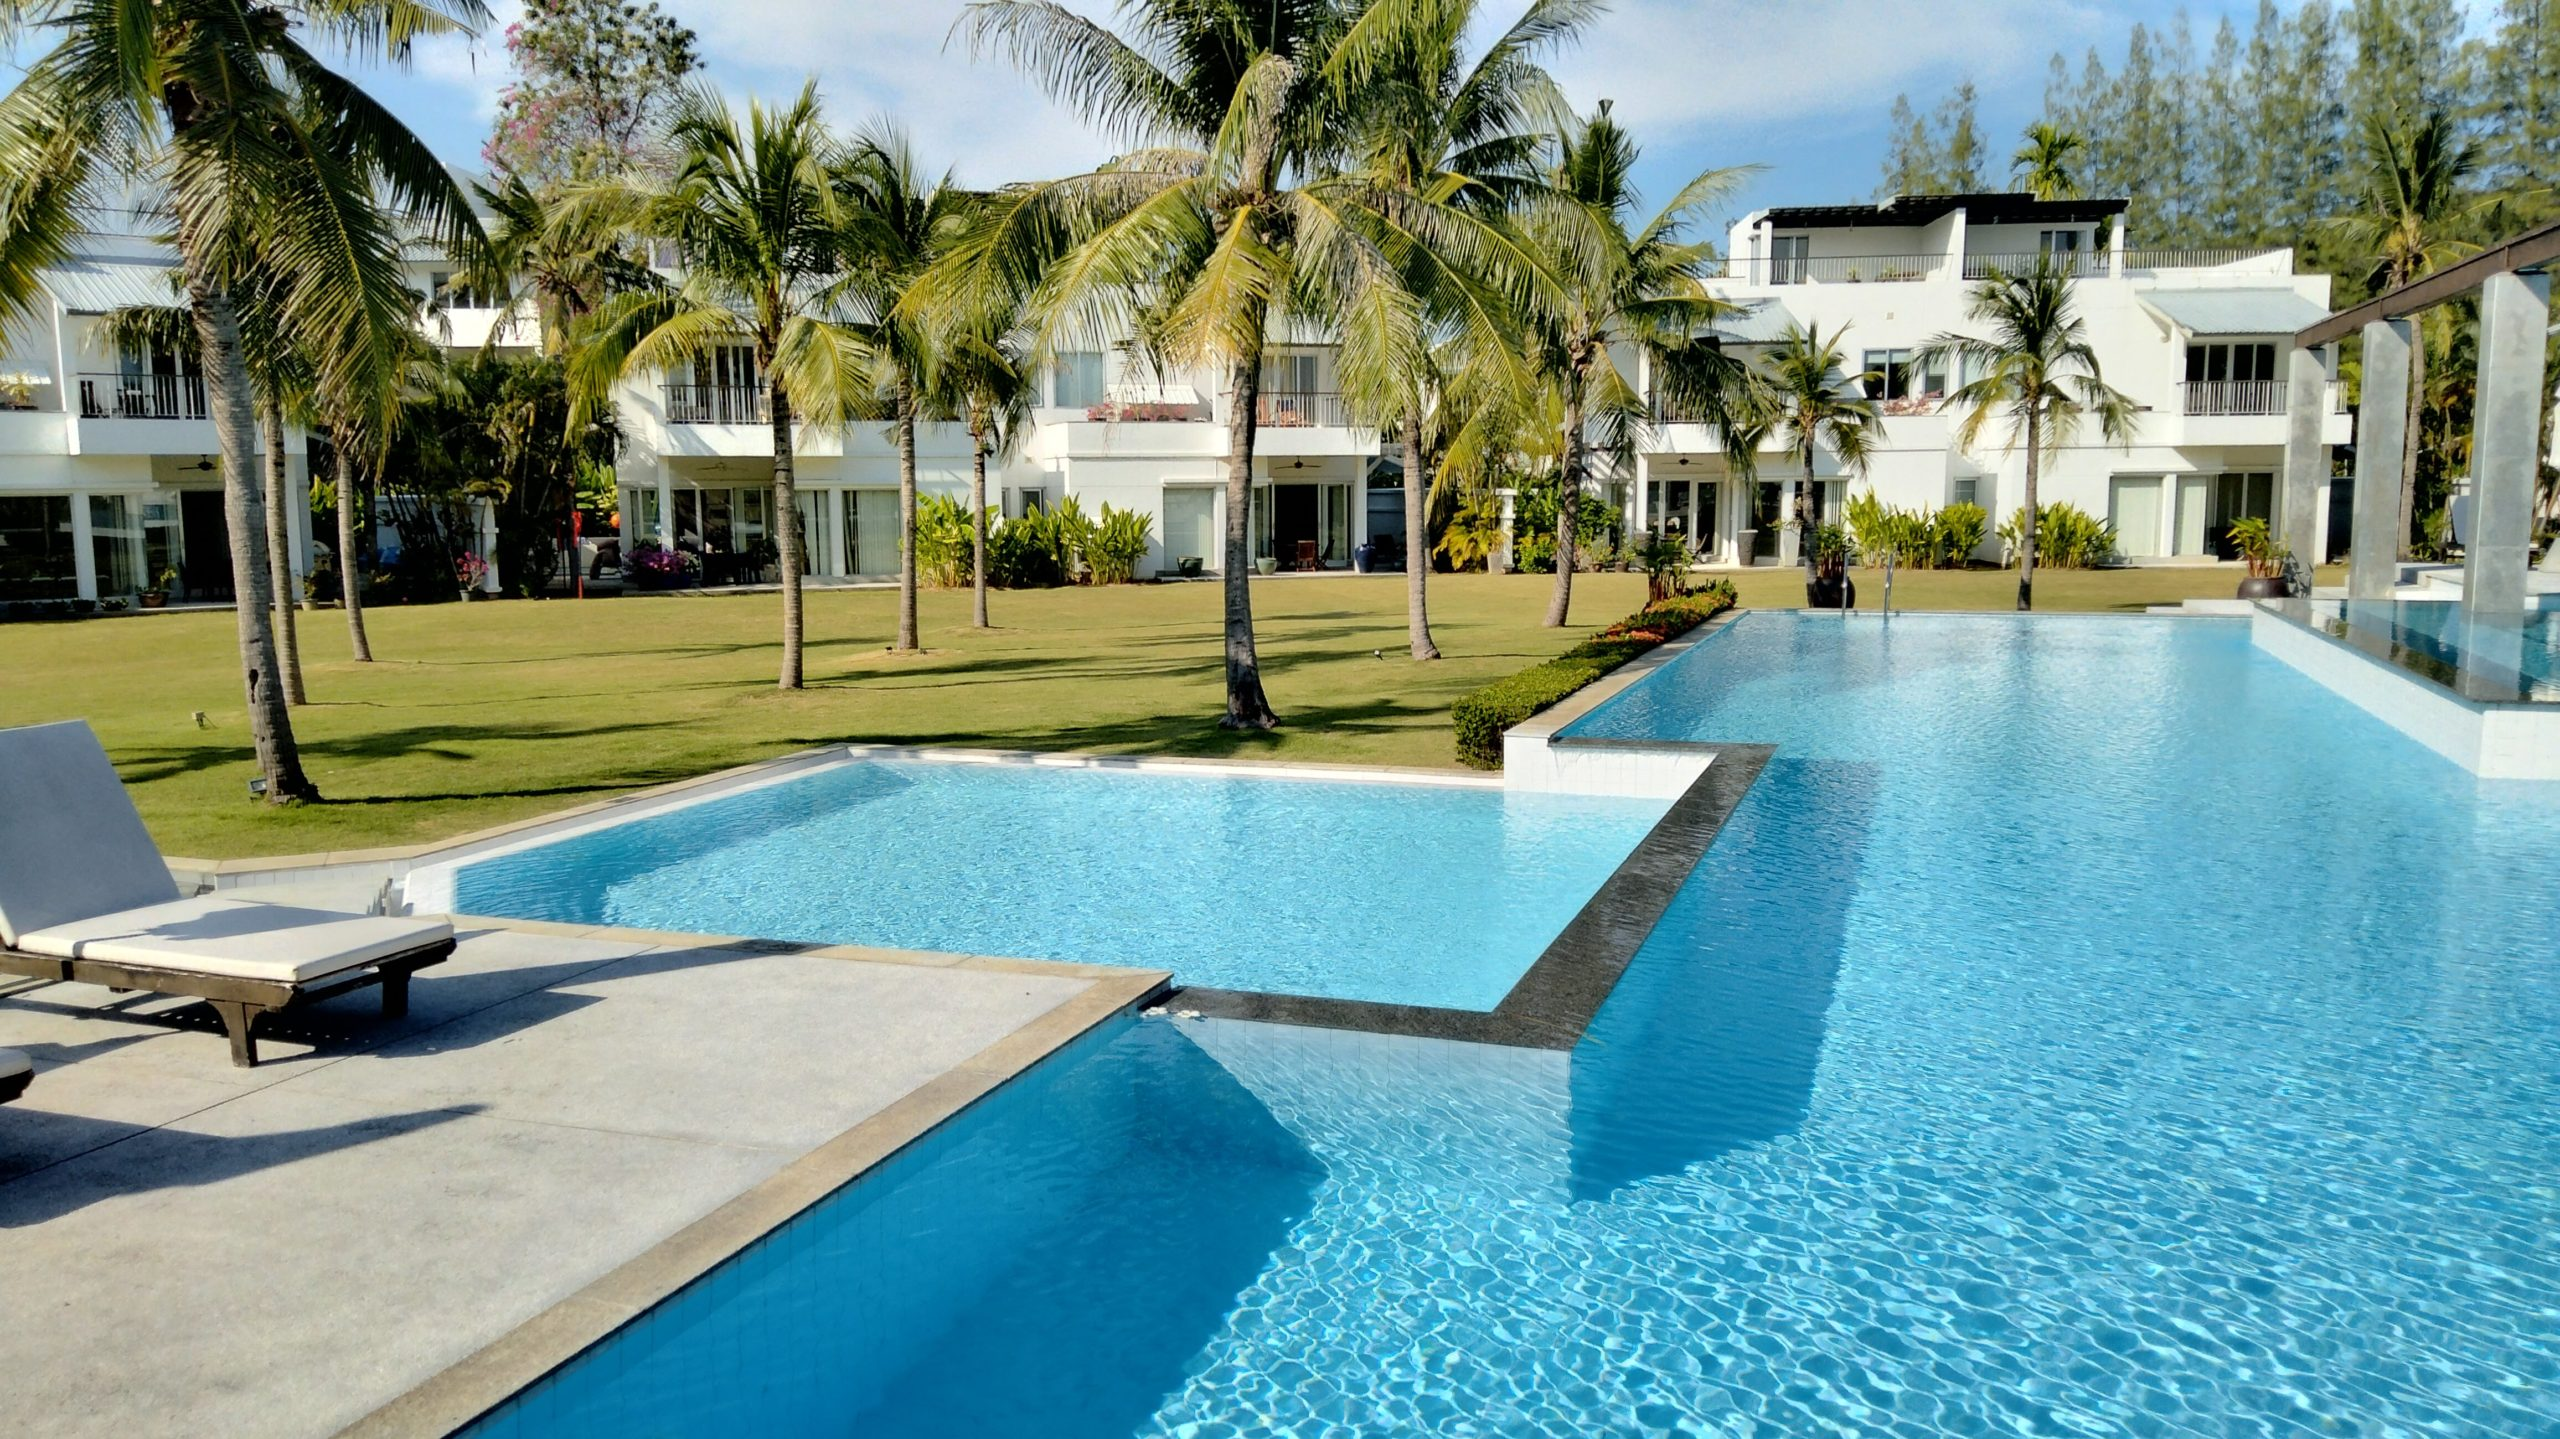 Modern Tropical Pool Villa with Unique Facilities in Phuket